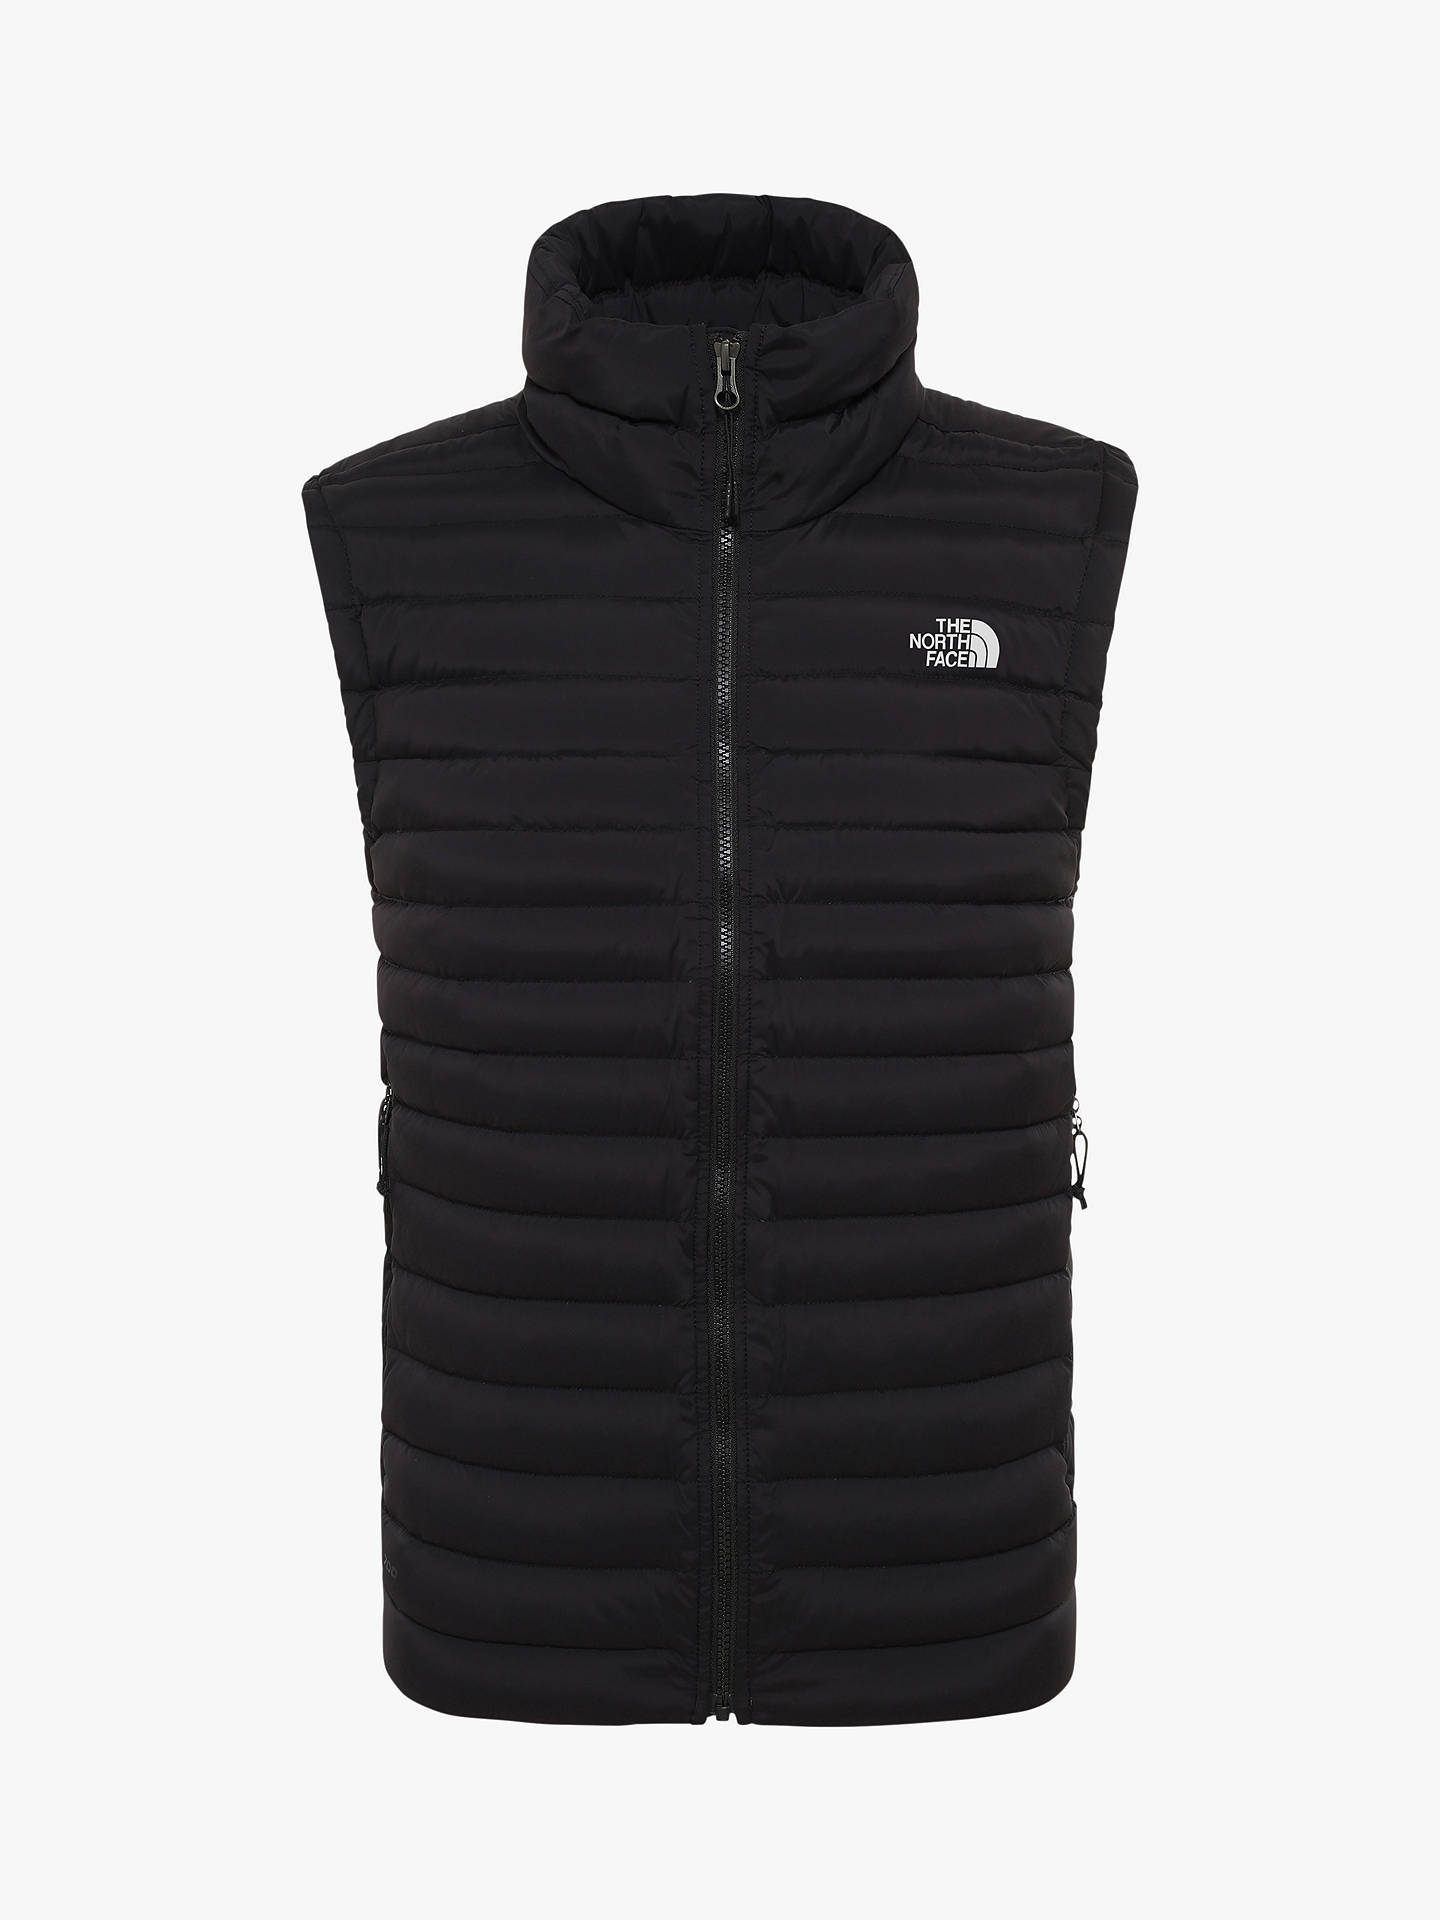 e1c6d4f58 Buy The North Face Stretch Down Vest